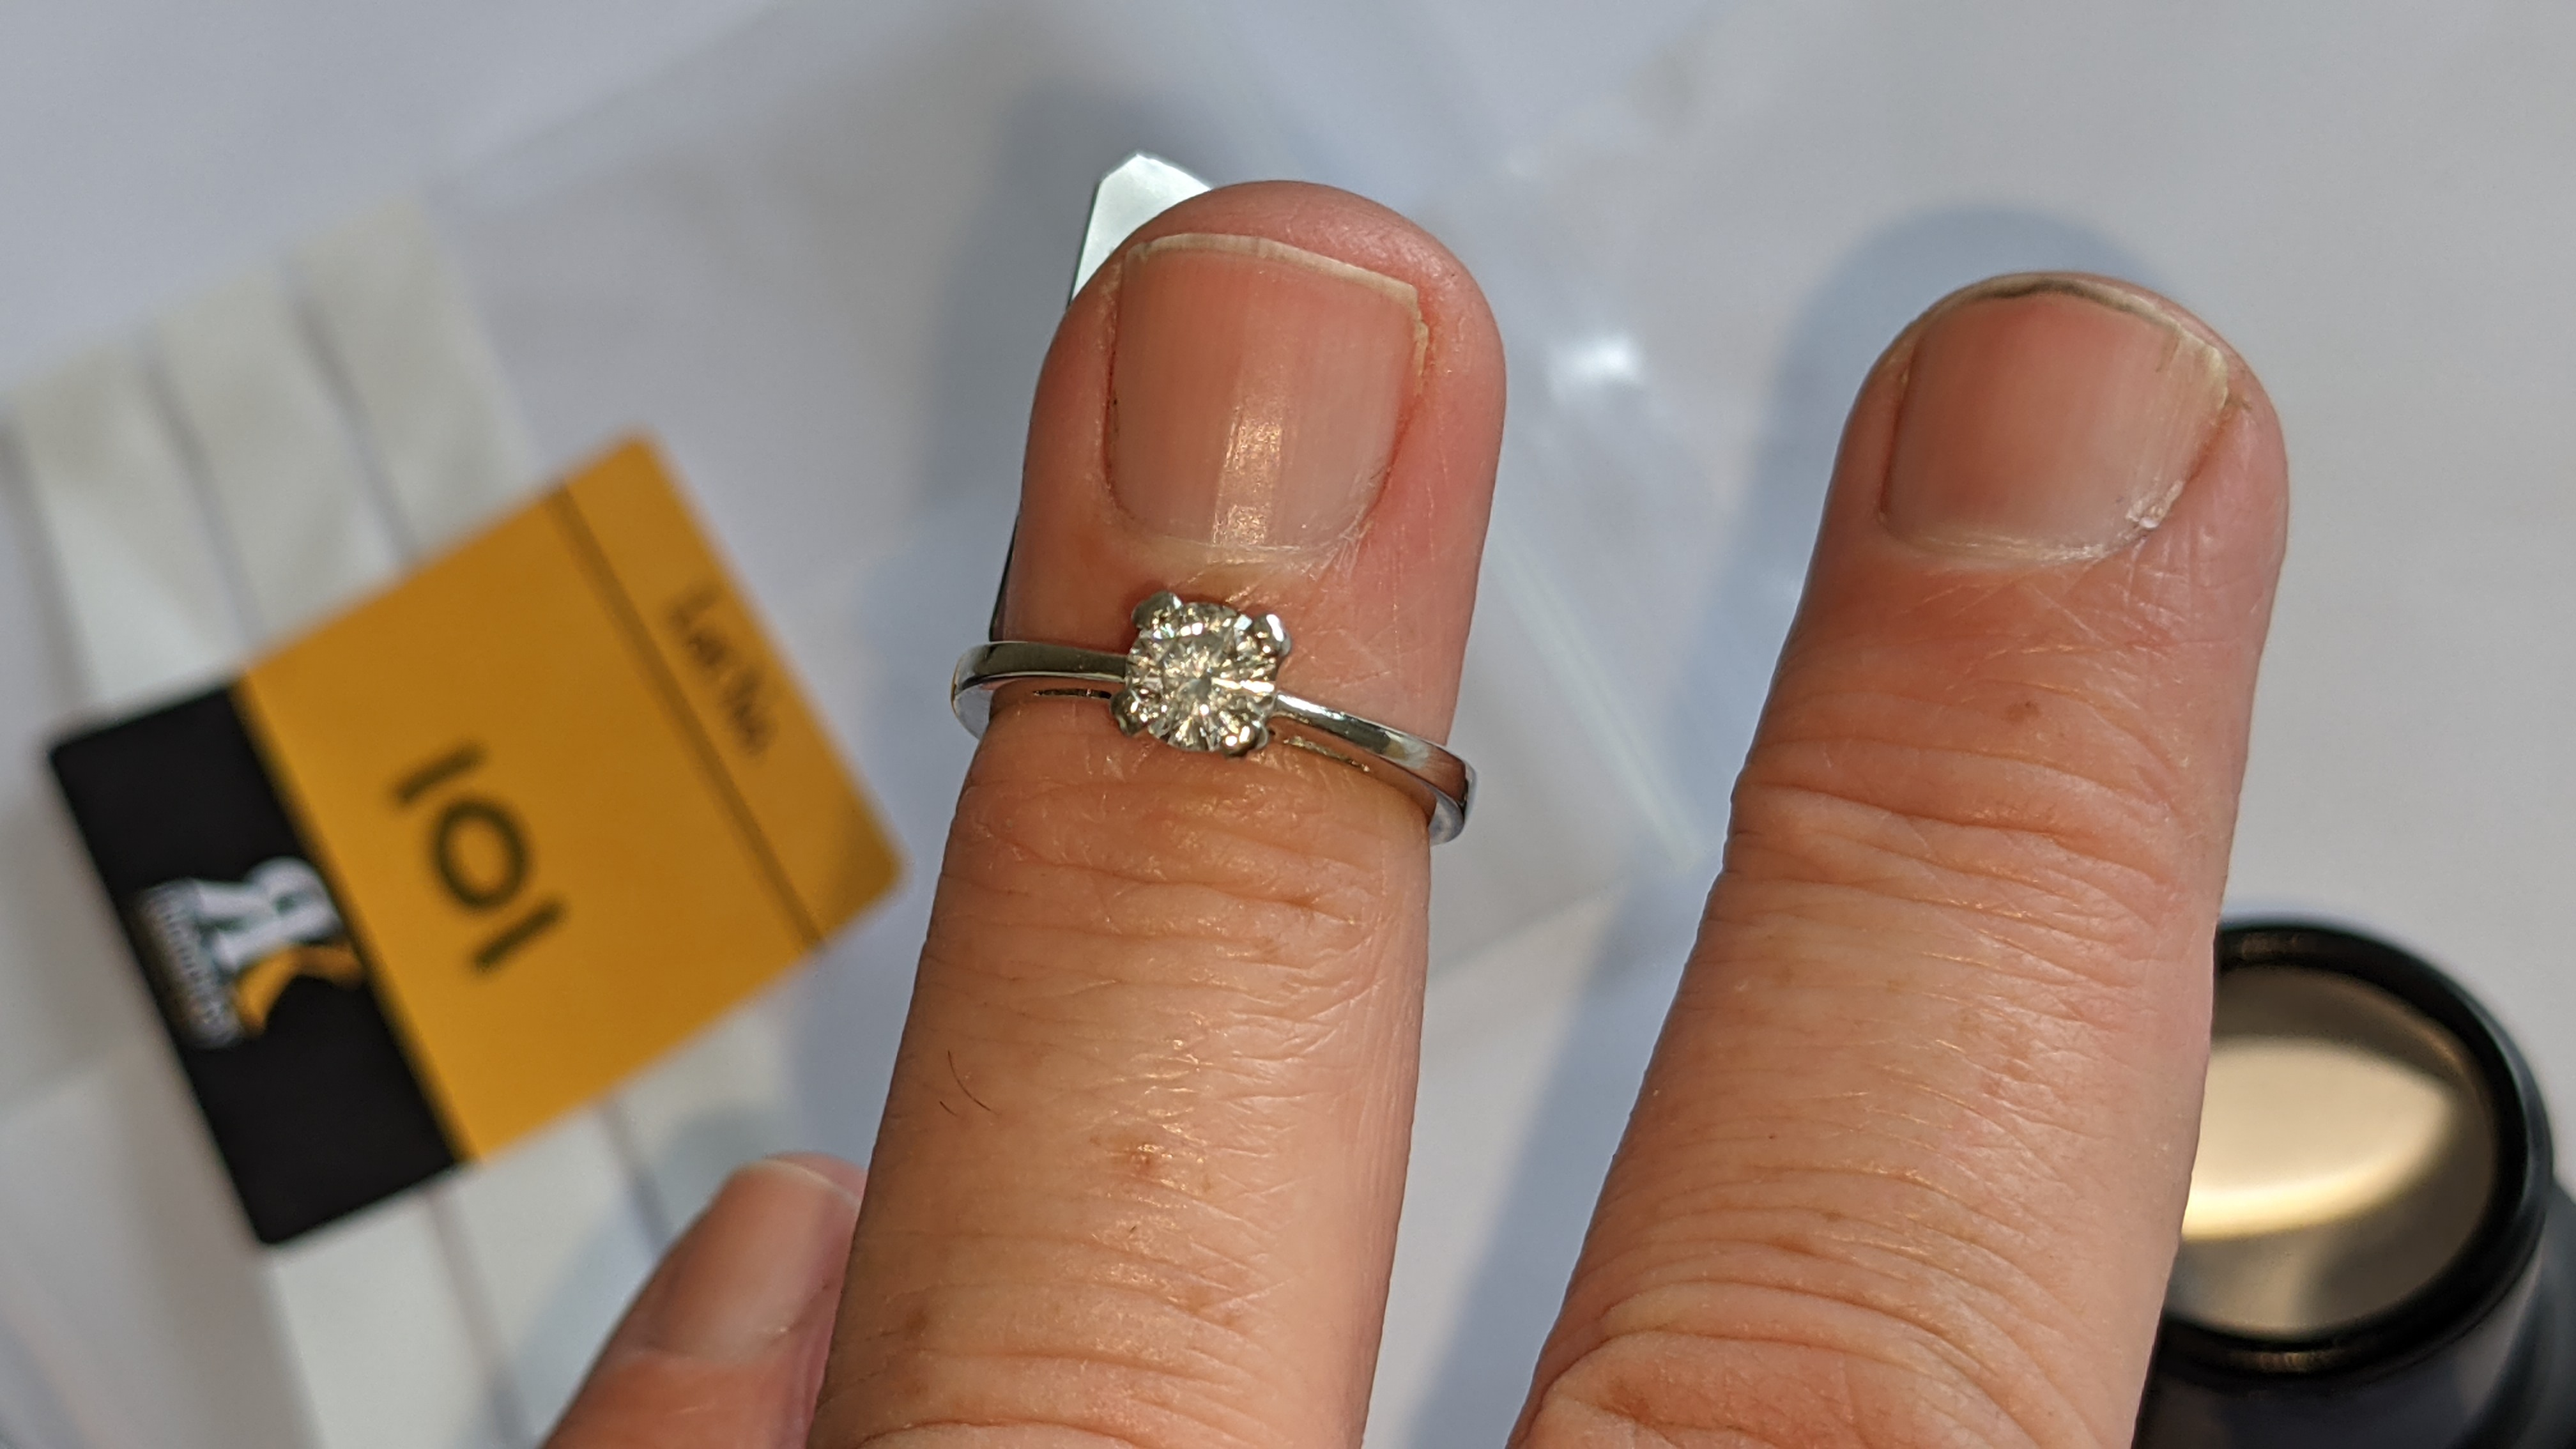 Platinum 950 ring with 0.50ct diamond. Includes diamond report/certification indicating the central - Image 14 of 25